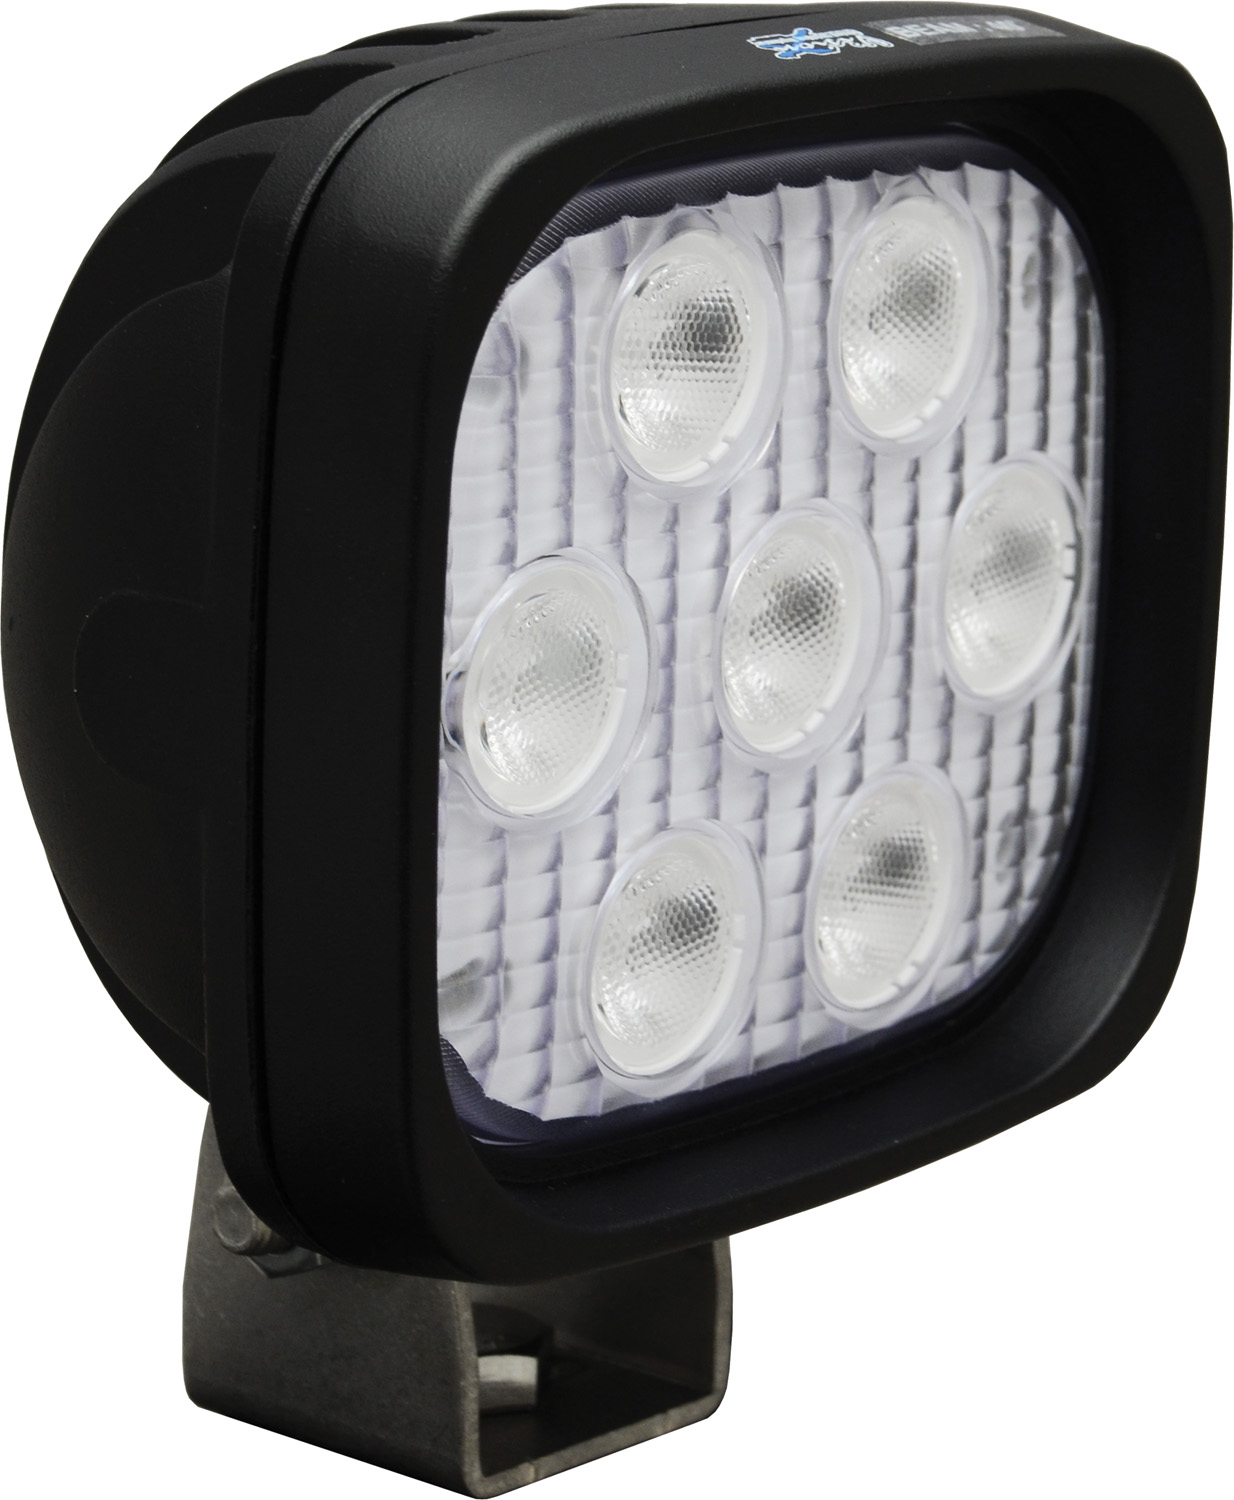 "4"" SQUARE UTILITY MARKET BLACK 7 3W LED'S 40ç WIDE"